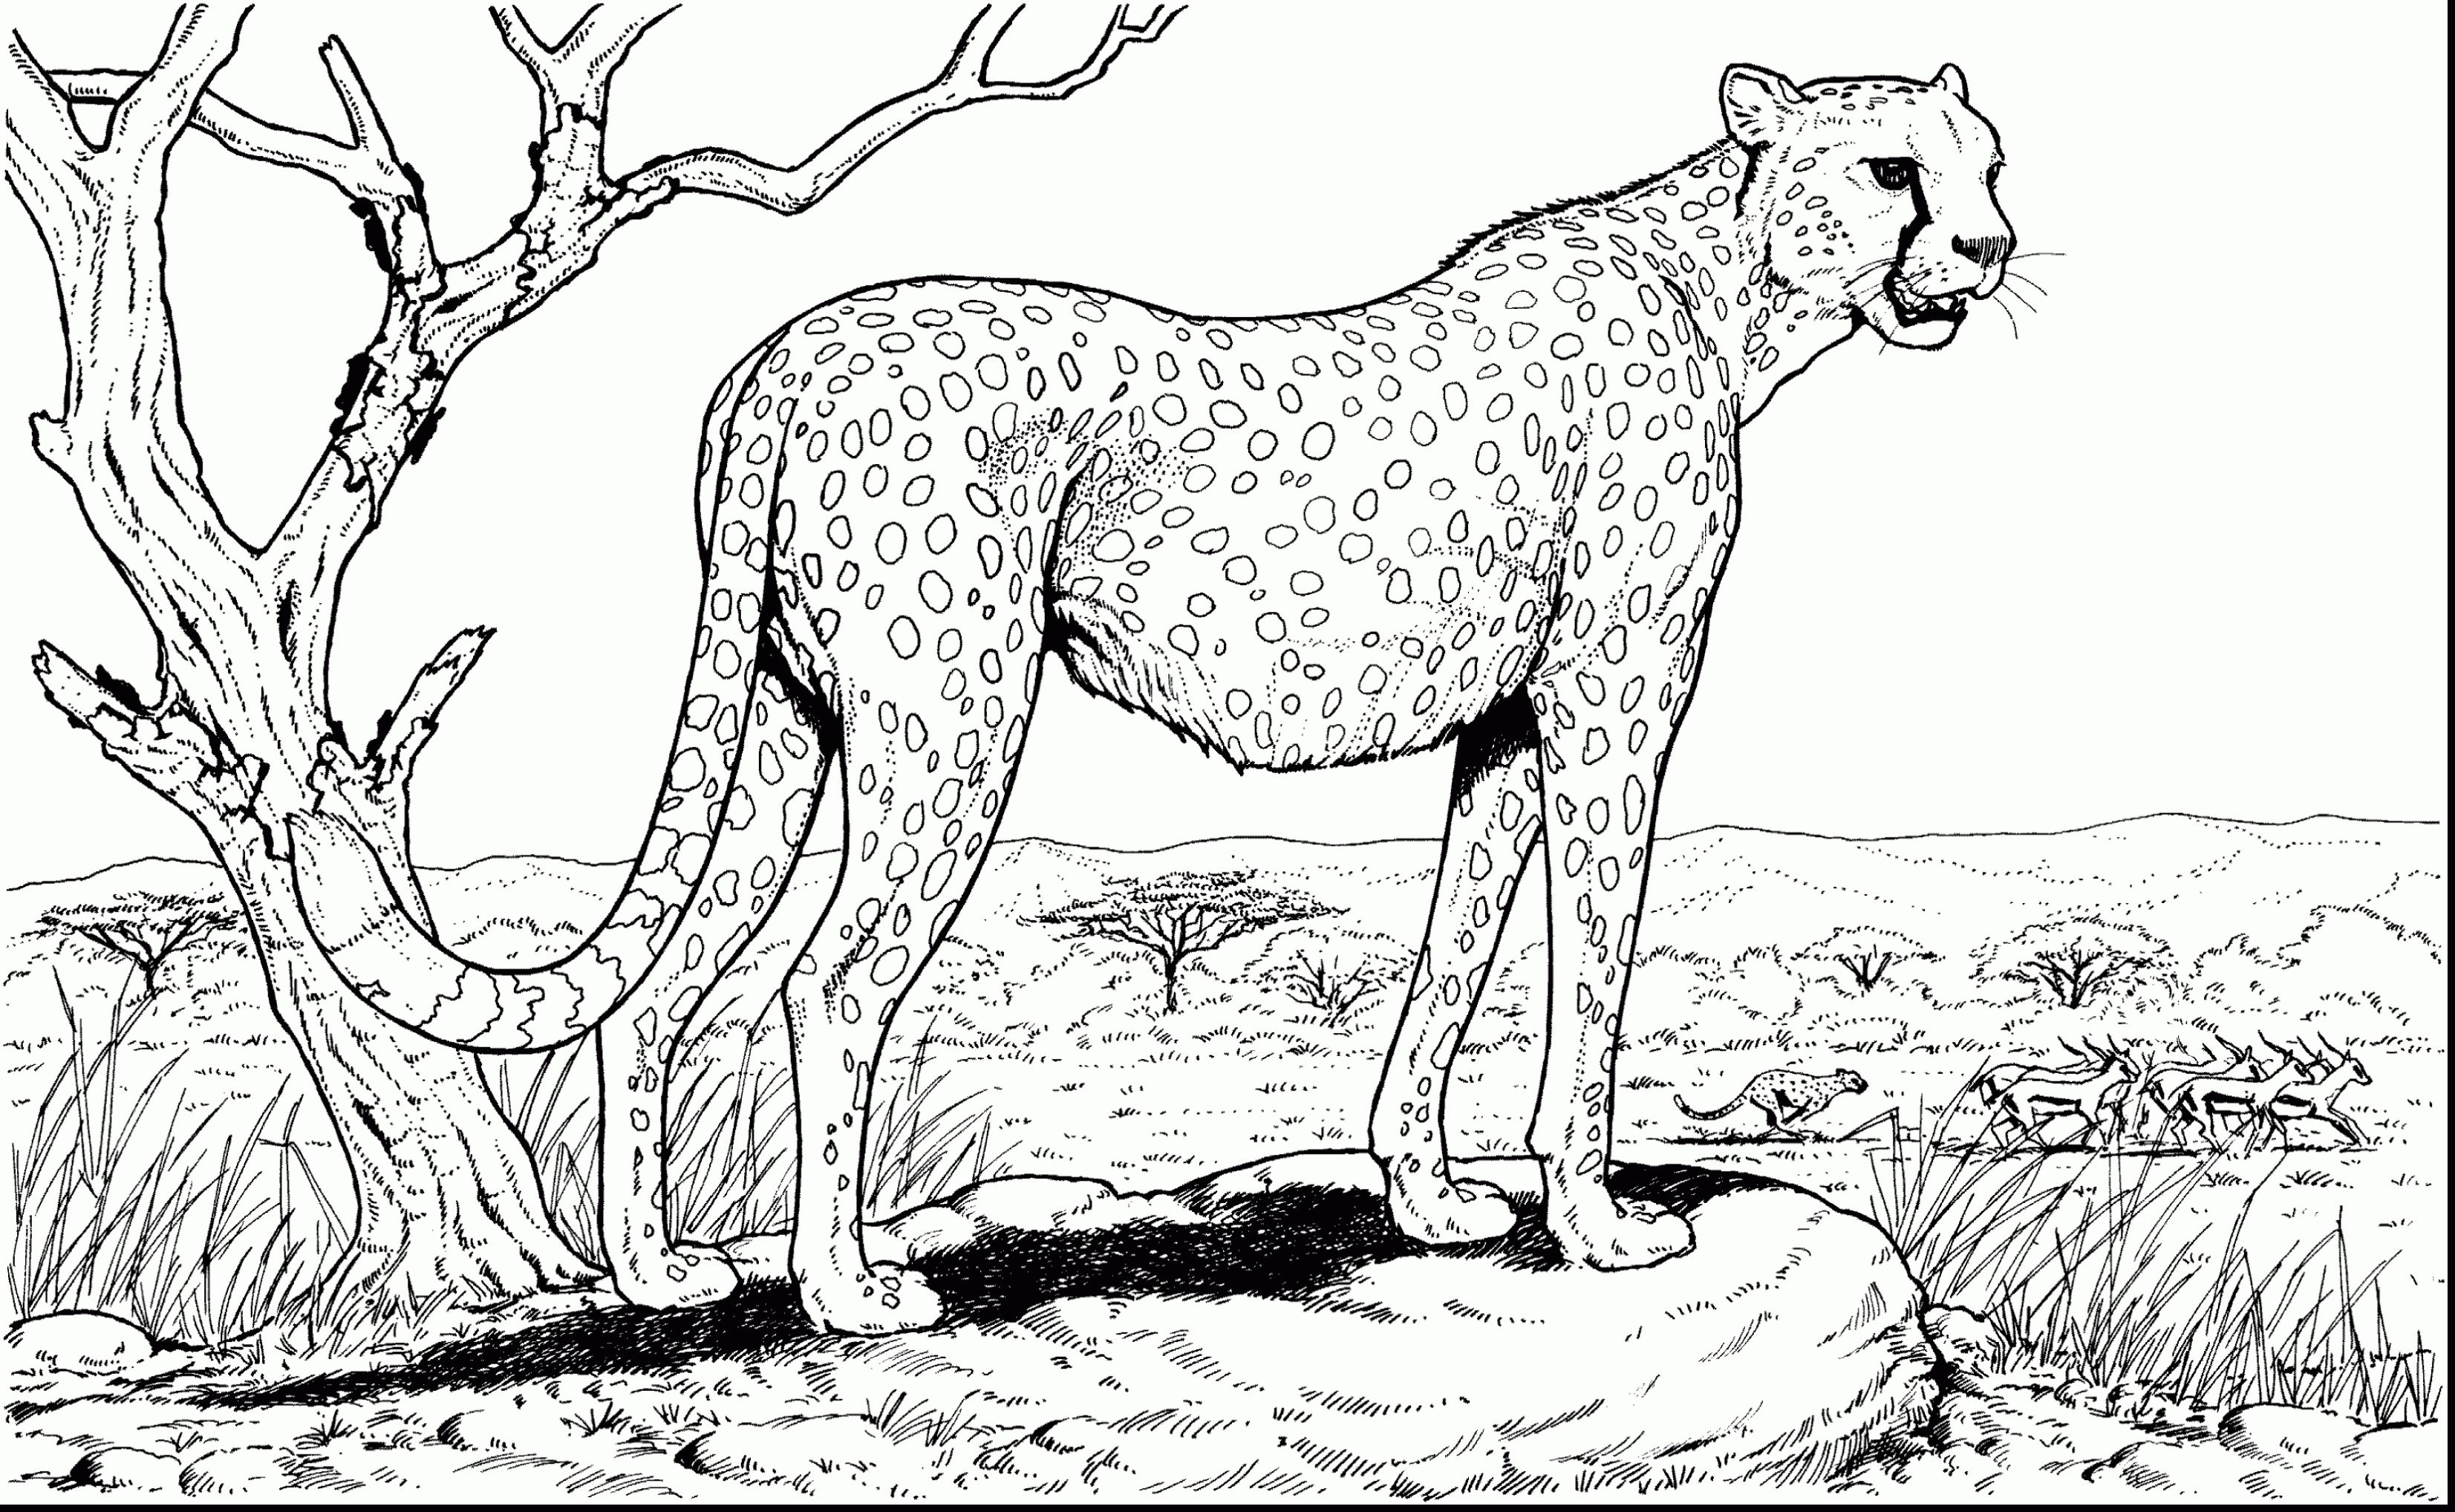 Cheetah Family Coloring Pages To Print Dieren Kleurplaten Kleurplaten Kleurplaten Voor Volwassenen